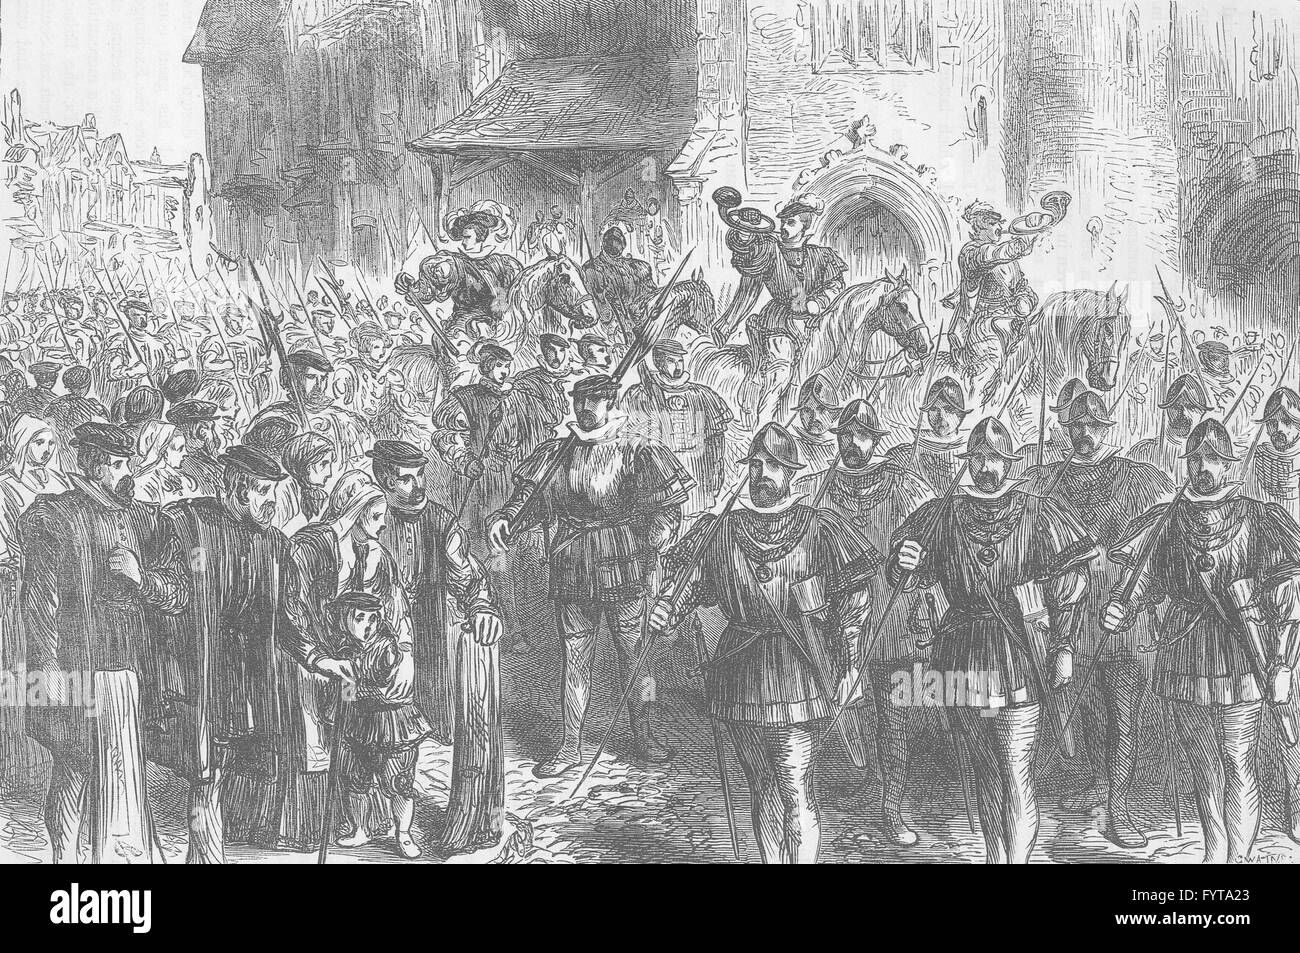 THREADNEEDLE STREET: March of the archers. London, antique print c1880 - Stock Image